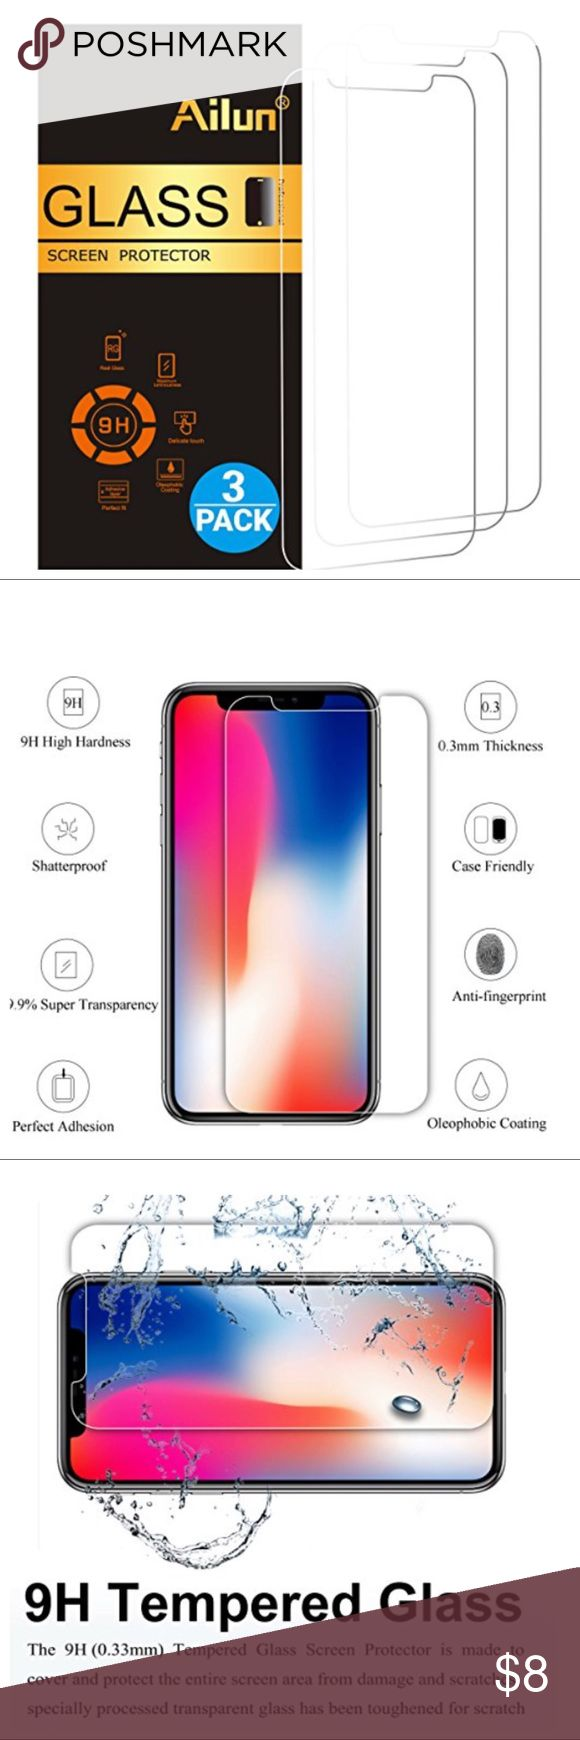 3 IPHONE 10 SCREEN PROTECTORS 3 pack iPhone 10/X Screen Protector,iPhone 10 Screen Protectors. 2.5D Edge Tempered Glass. Anti-Scratch, Case Friendly. Enjoy! Accessories Phone Cases